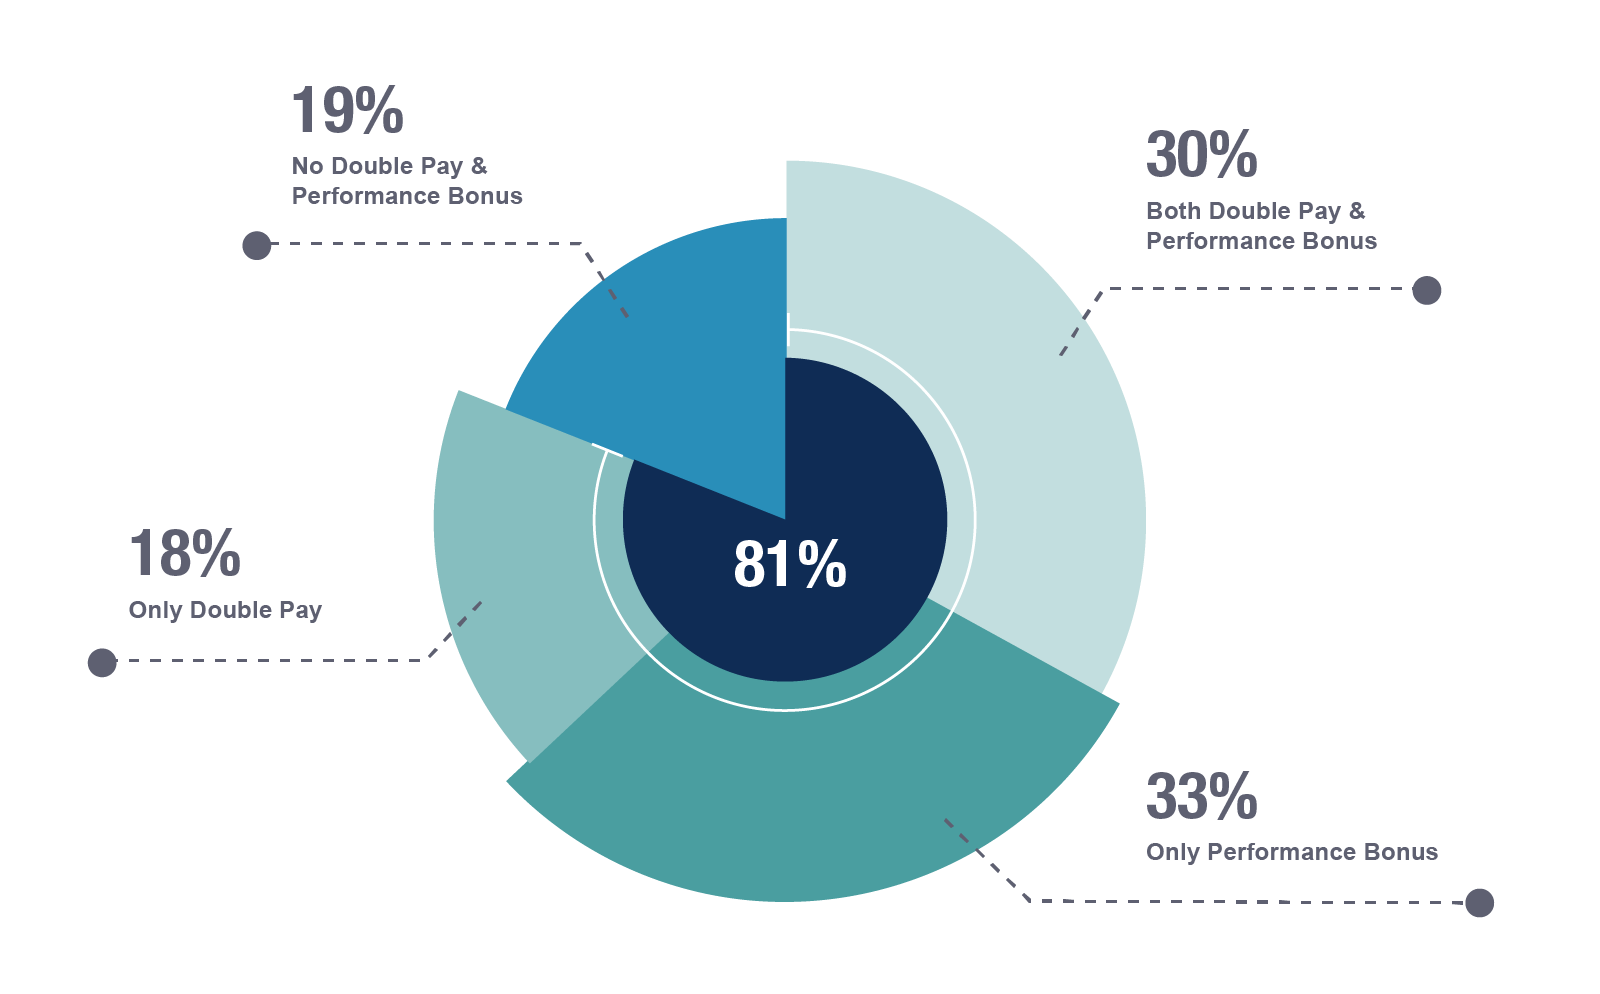 81% of surveyed companies provided double pay and/or performance bonus in 2017